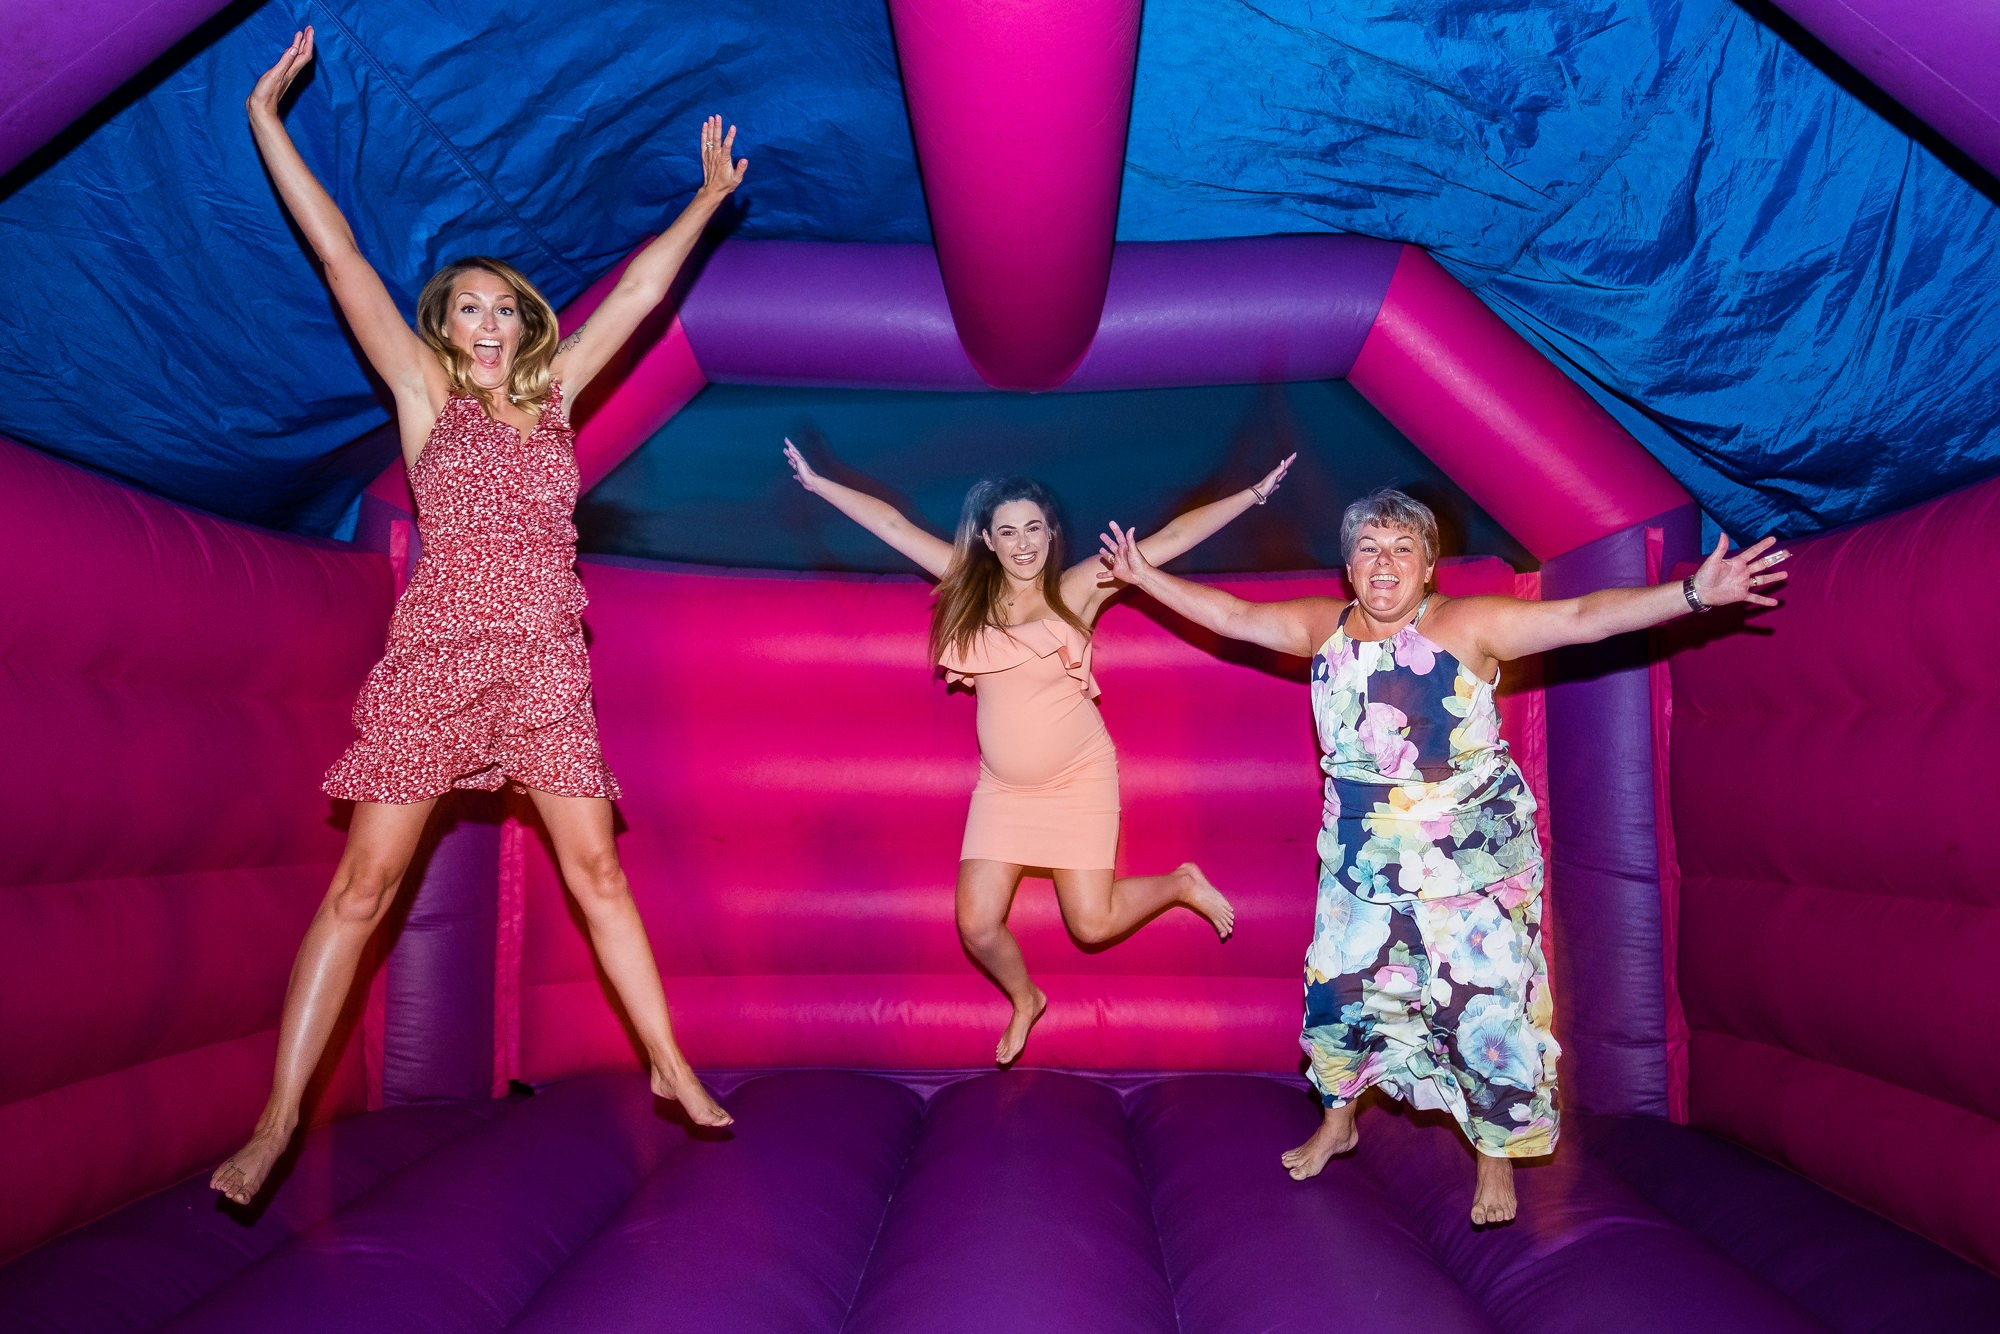 guests on bouncy castle at night